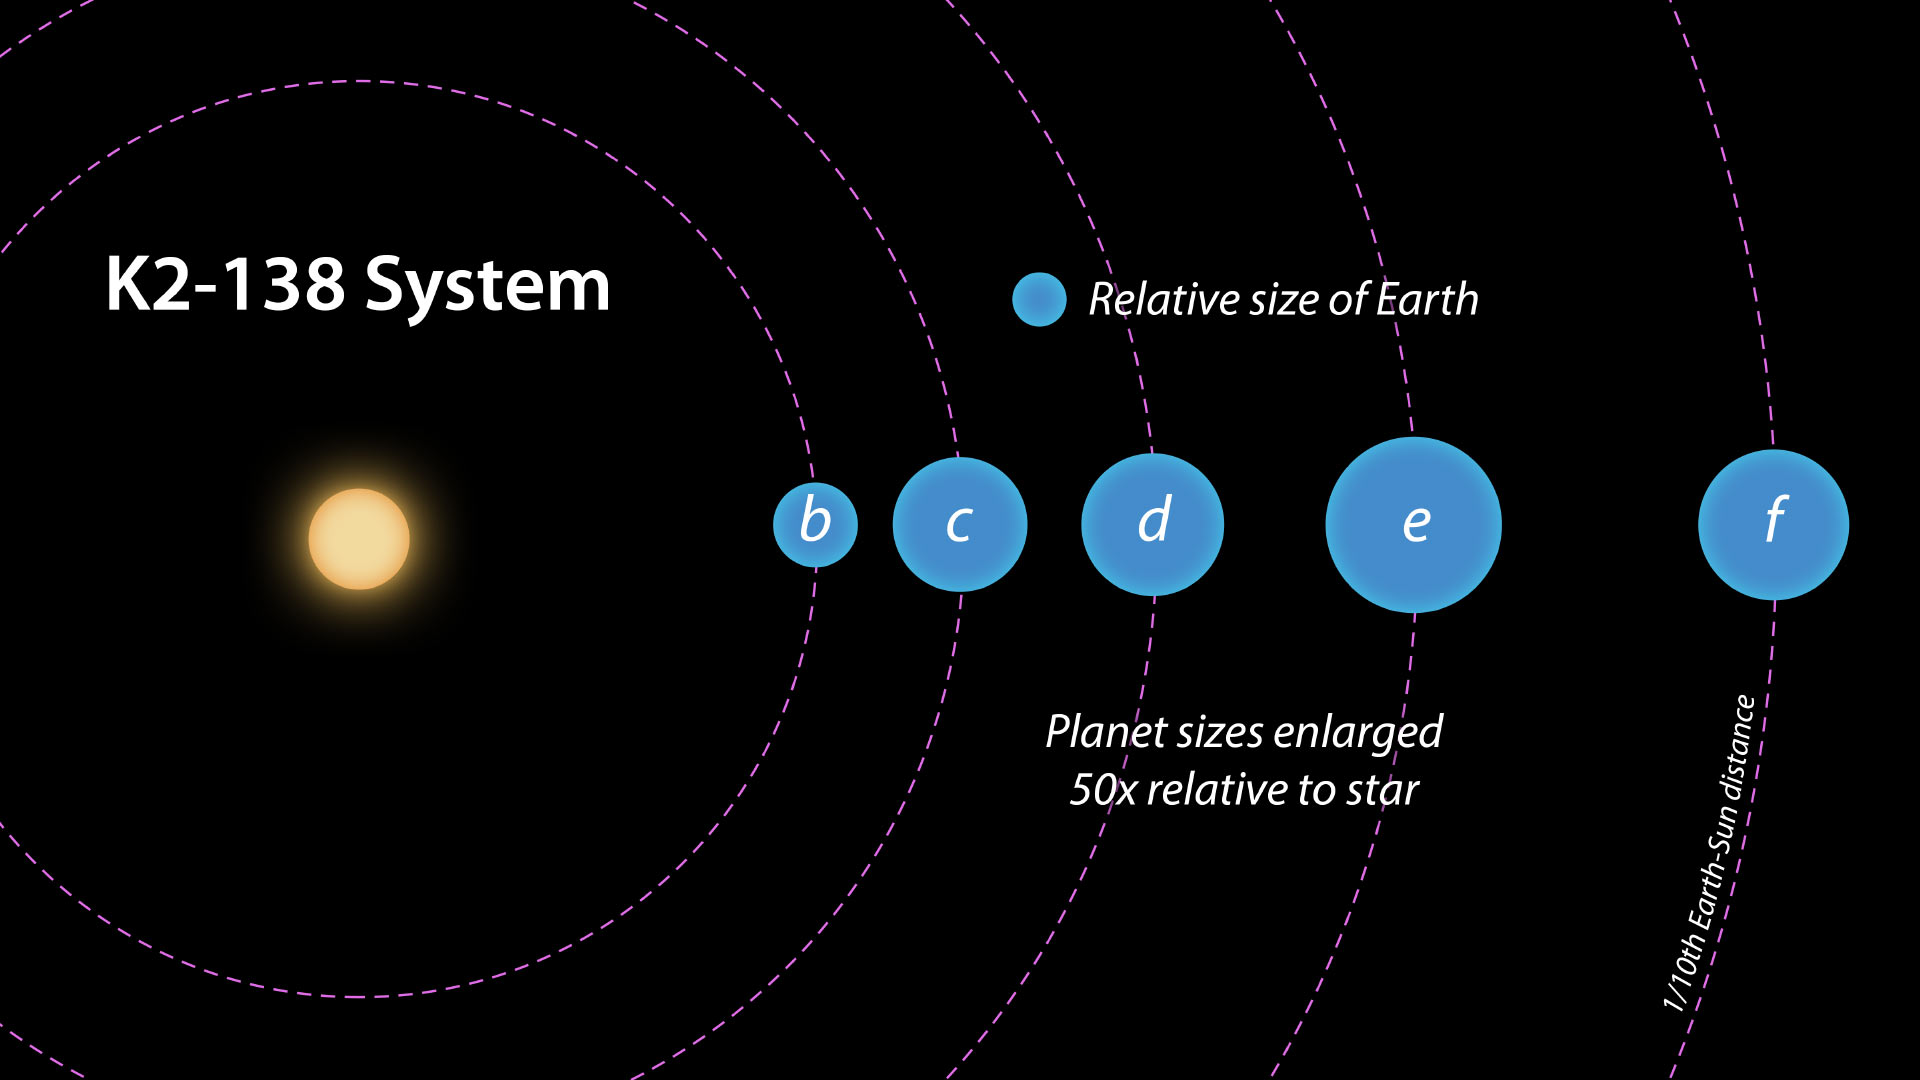 The K2 138 System The First Exoplanet System Discovered By Citizen Scientists Nasaspaceflight